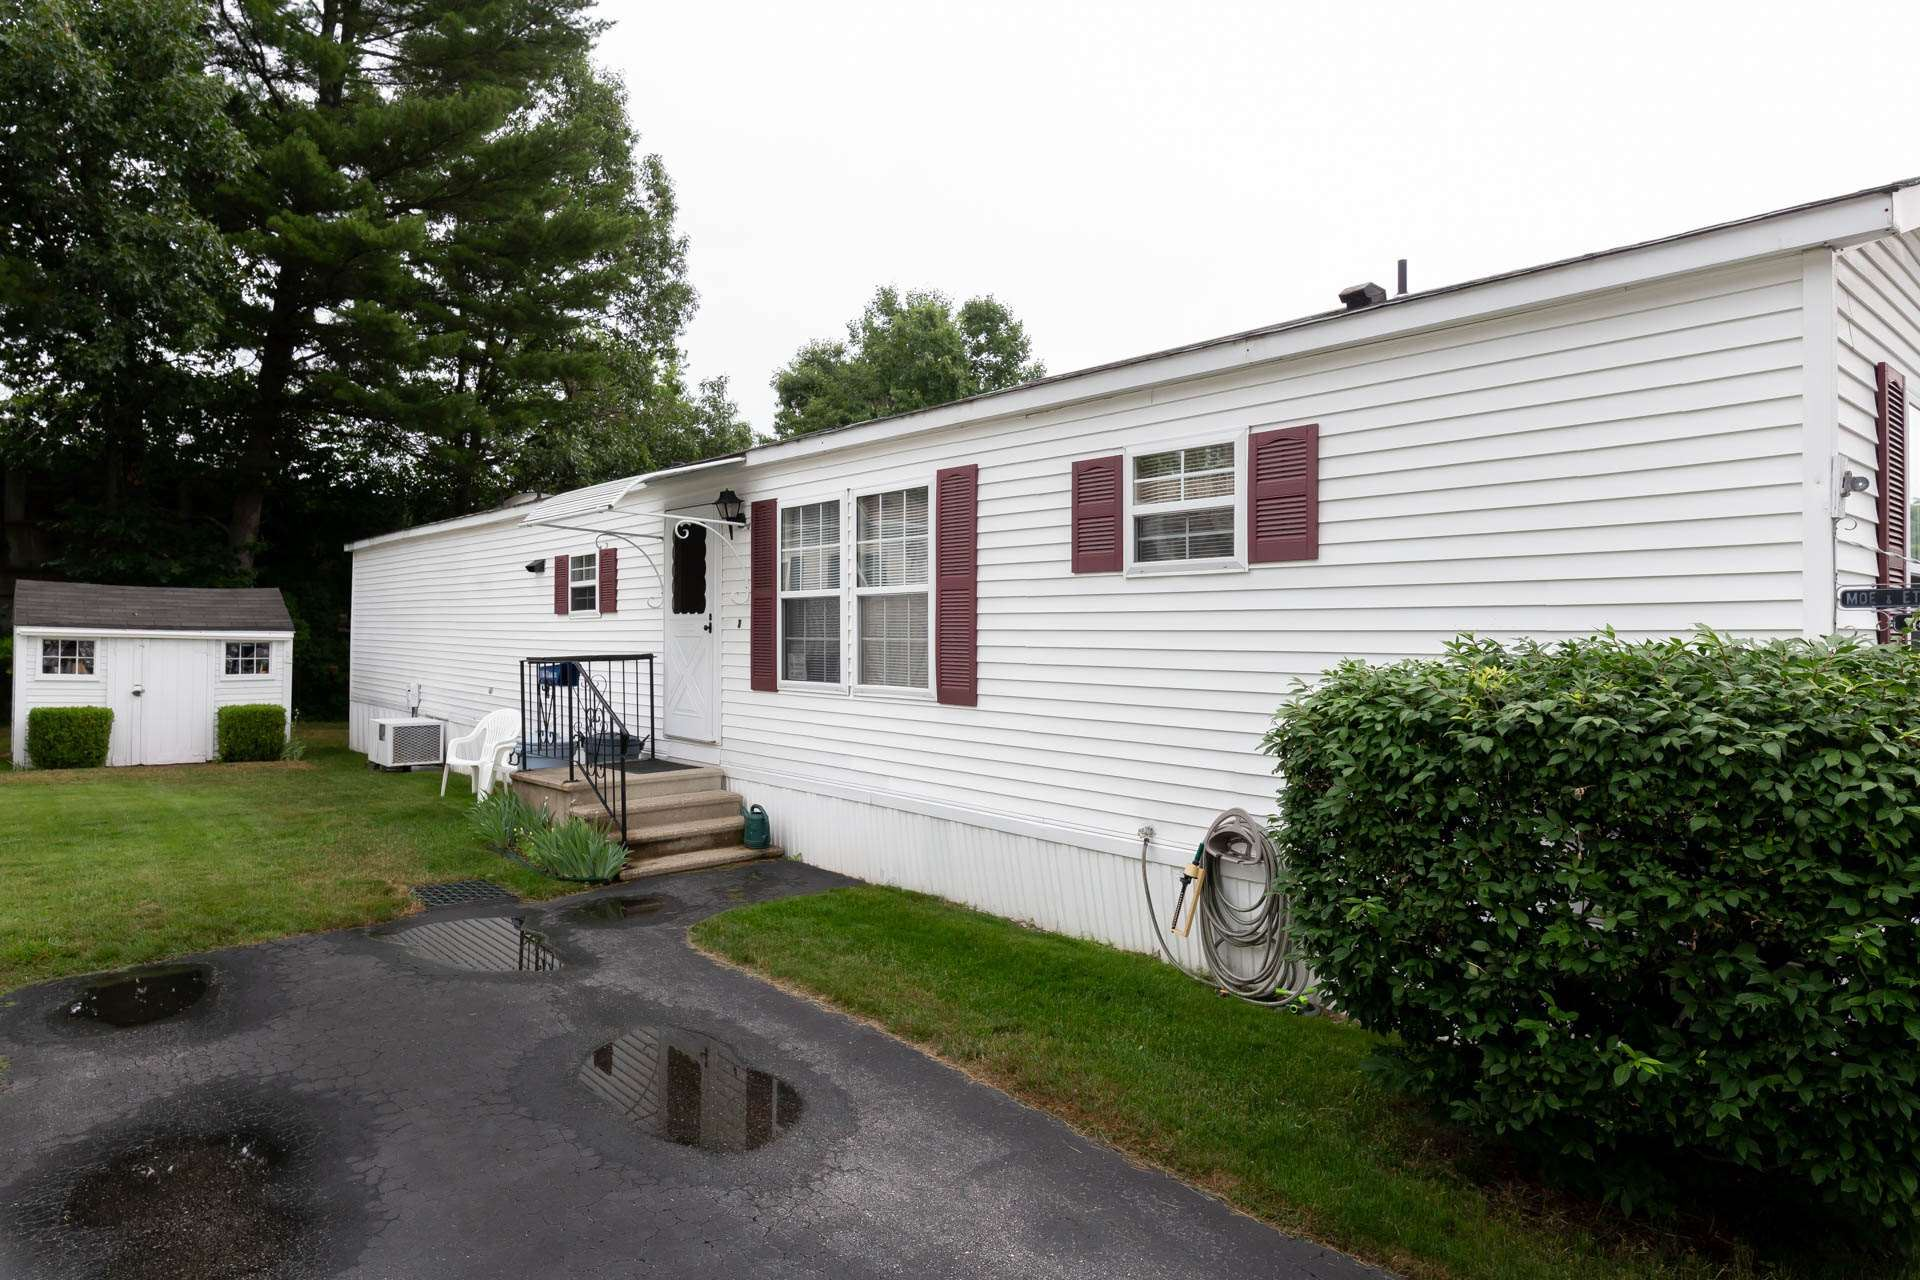 86 Thistle Way, Manchester, NH 03109 - #: 4814435